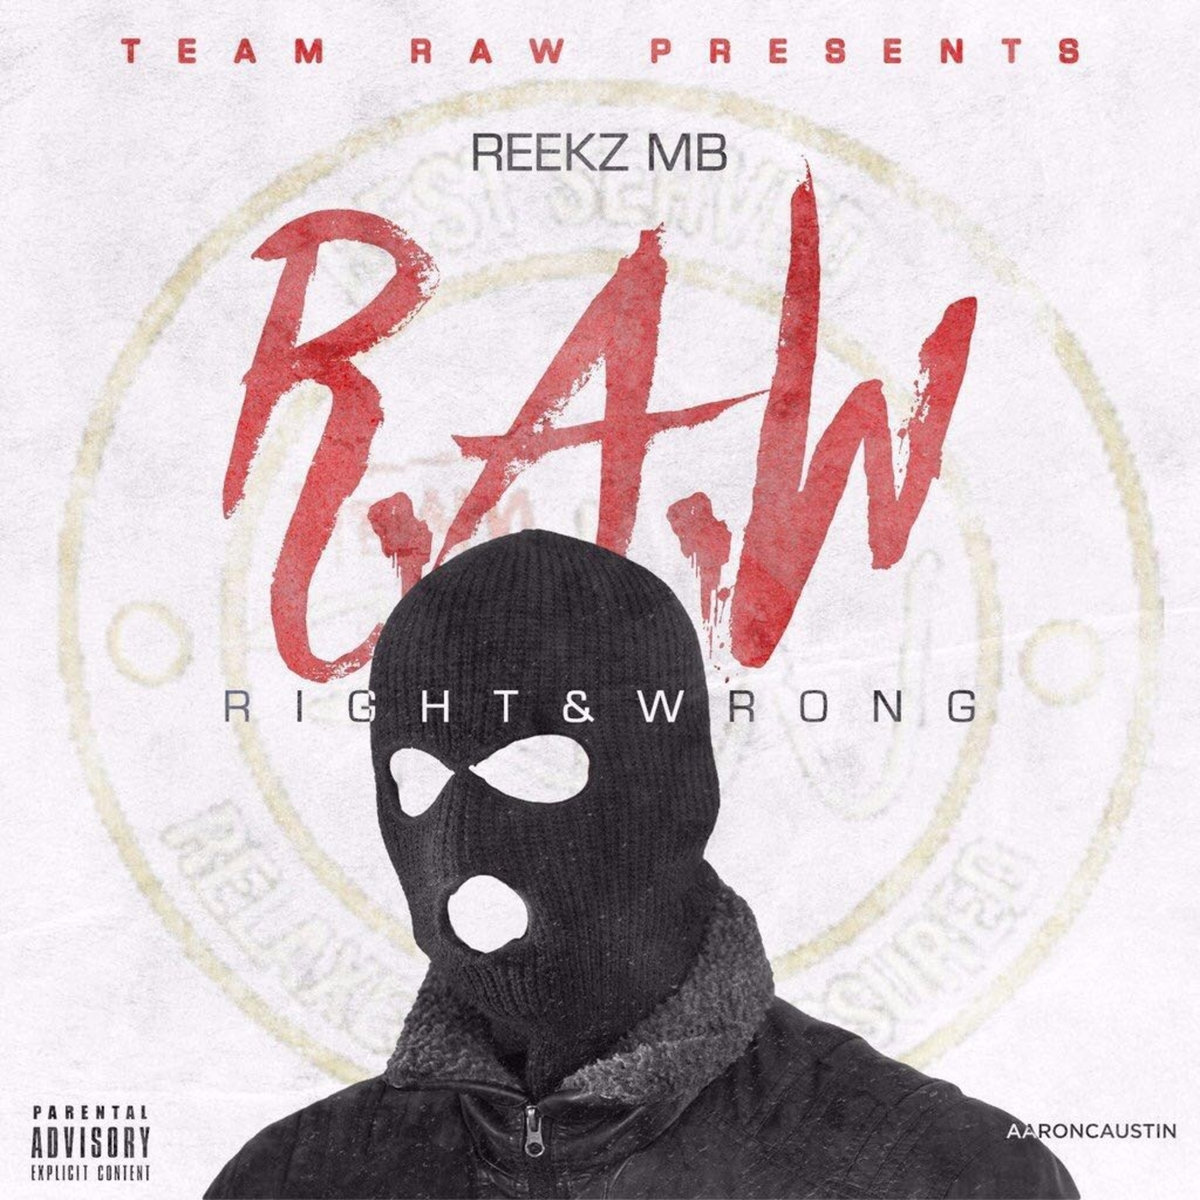 [Stream] Reekz MB - R.A.W (Right & Wrong)